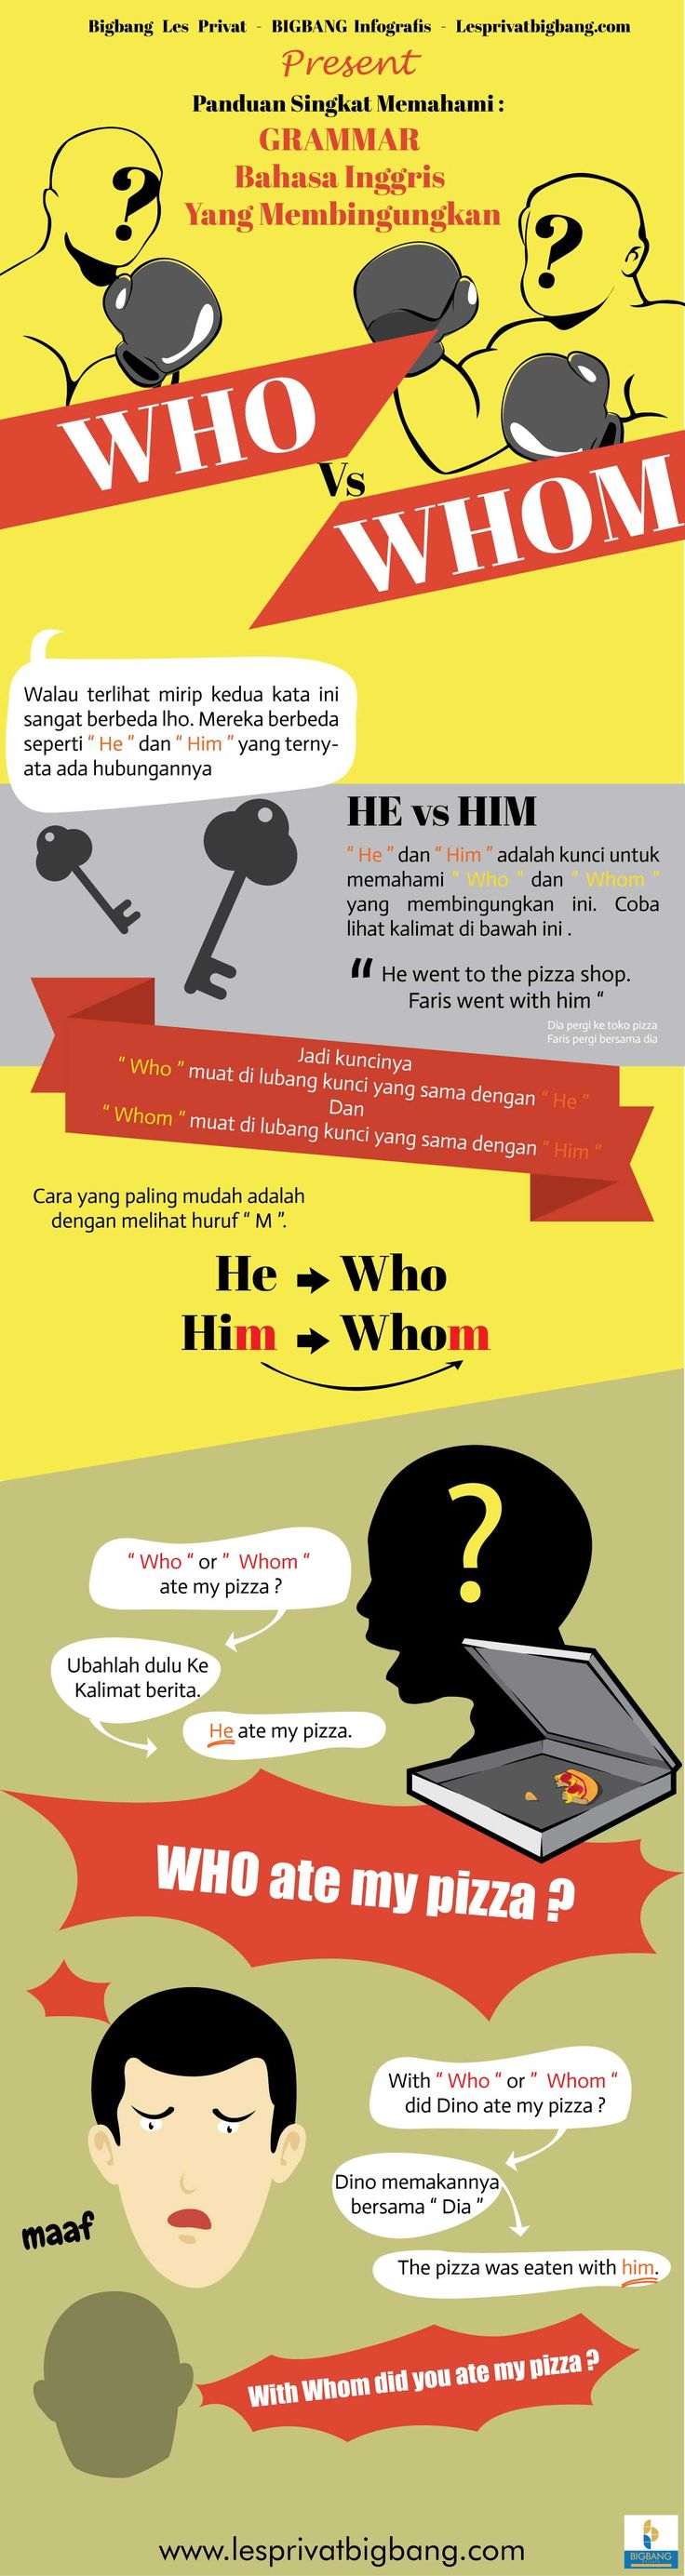 WHO-Vs-WHOM infografis